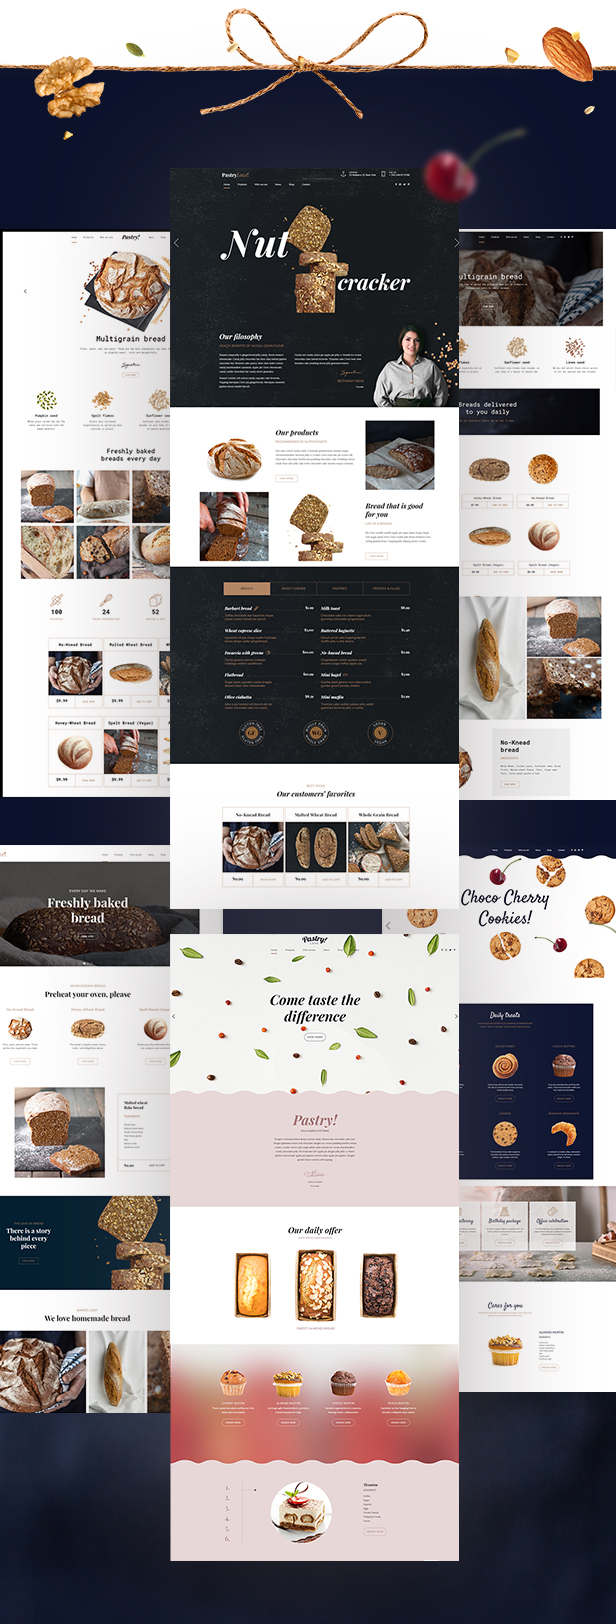 Pastry Love - Bakery & Cake Shop - 3